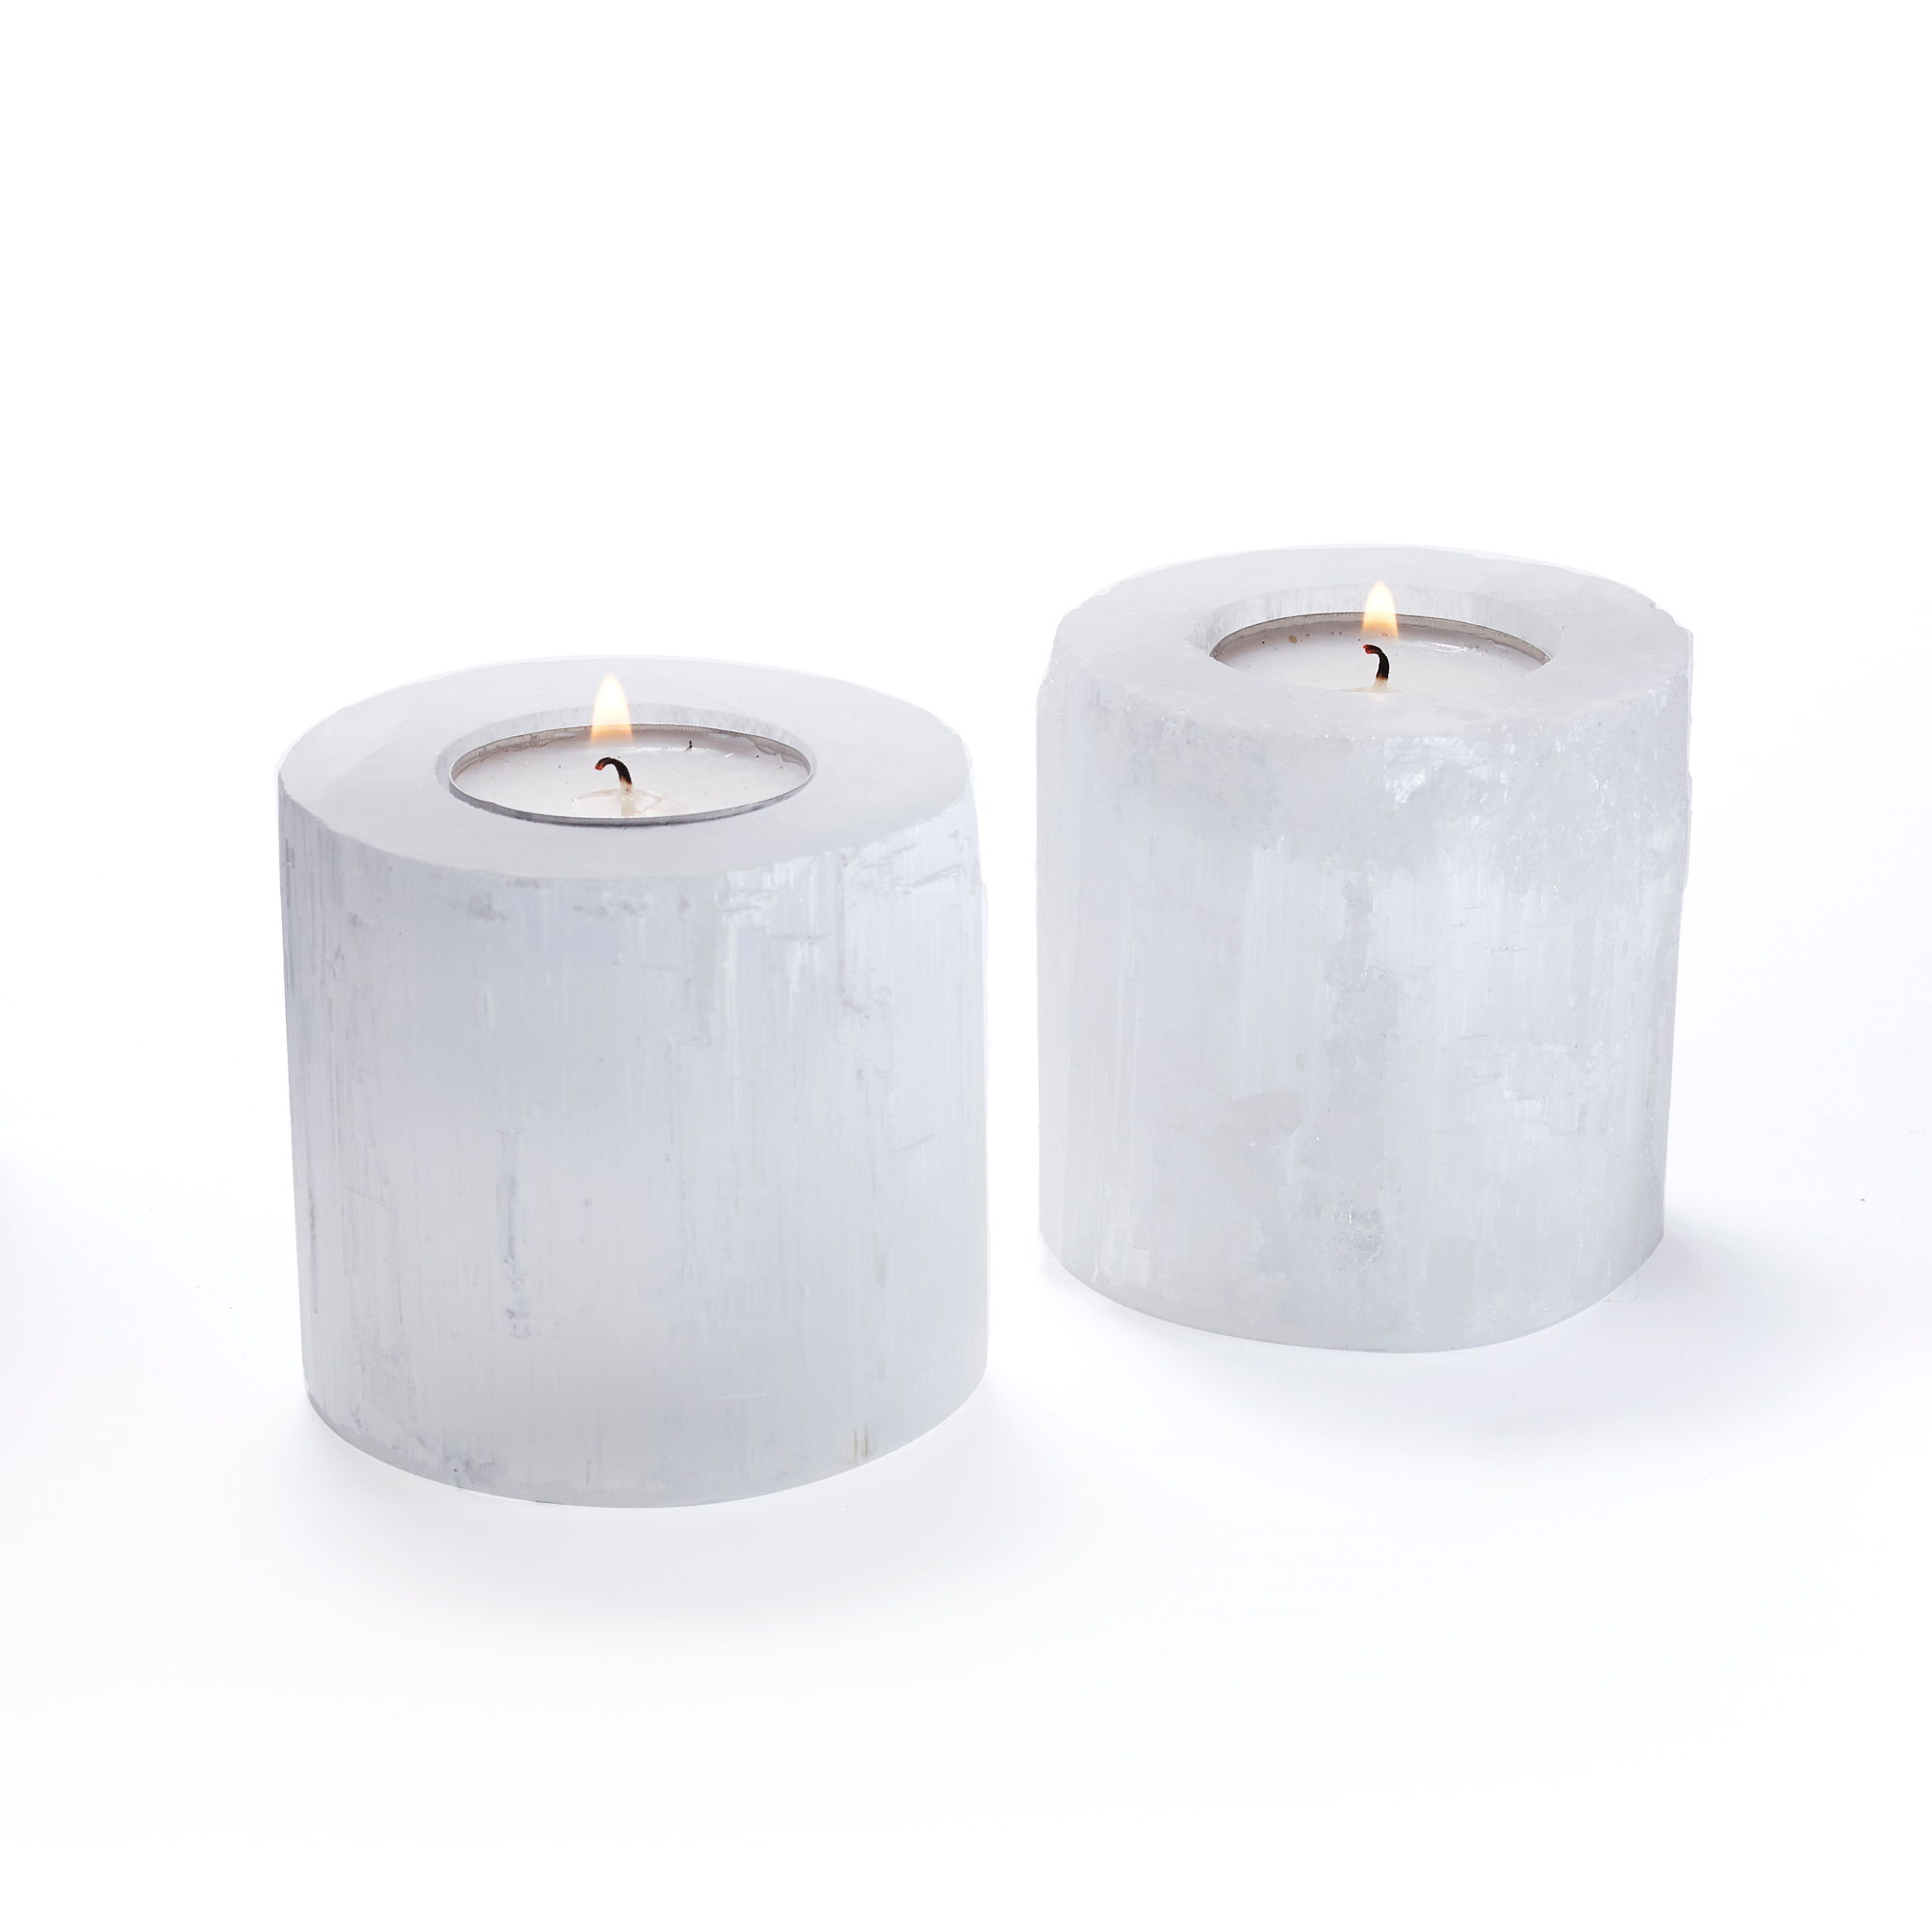 Selanite Tealight Holders, Set of 2